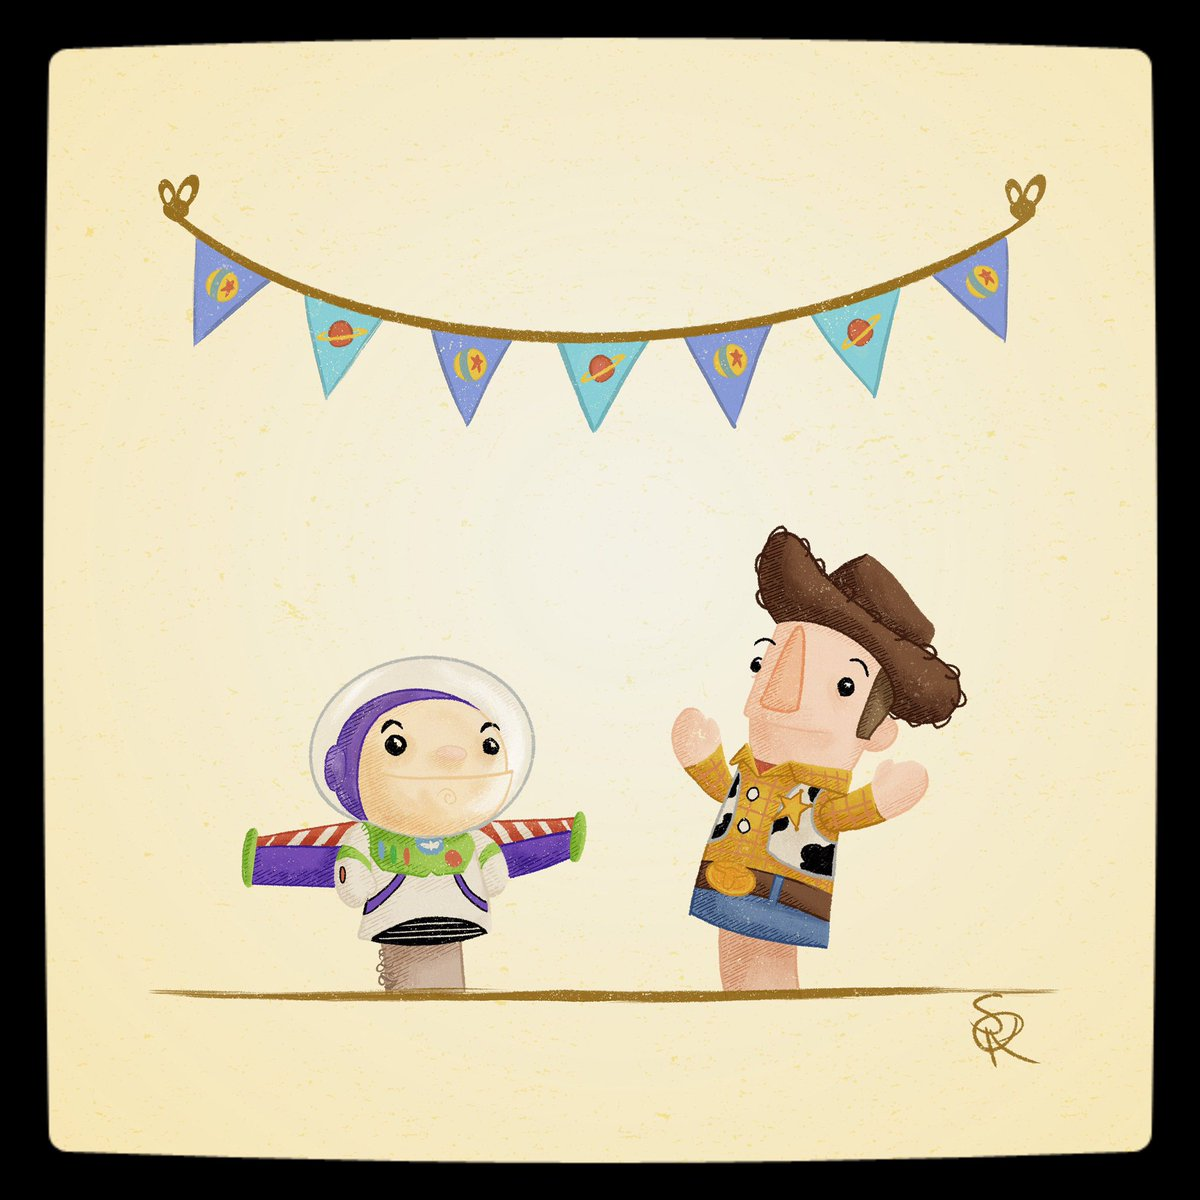 Today's POPpet show guests have a friend in them, literally.  #poppetshow #puppetshow #marioneta #toystory #woody #buzz #buzzlightyear #cowboy #space #vaquero #illustration #ilustracion #cartoon #pizzaplanet https://t.co/4GsLQ1rejE